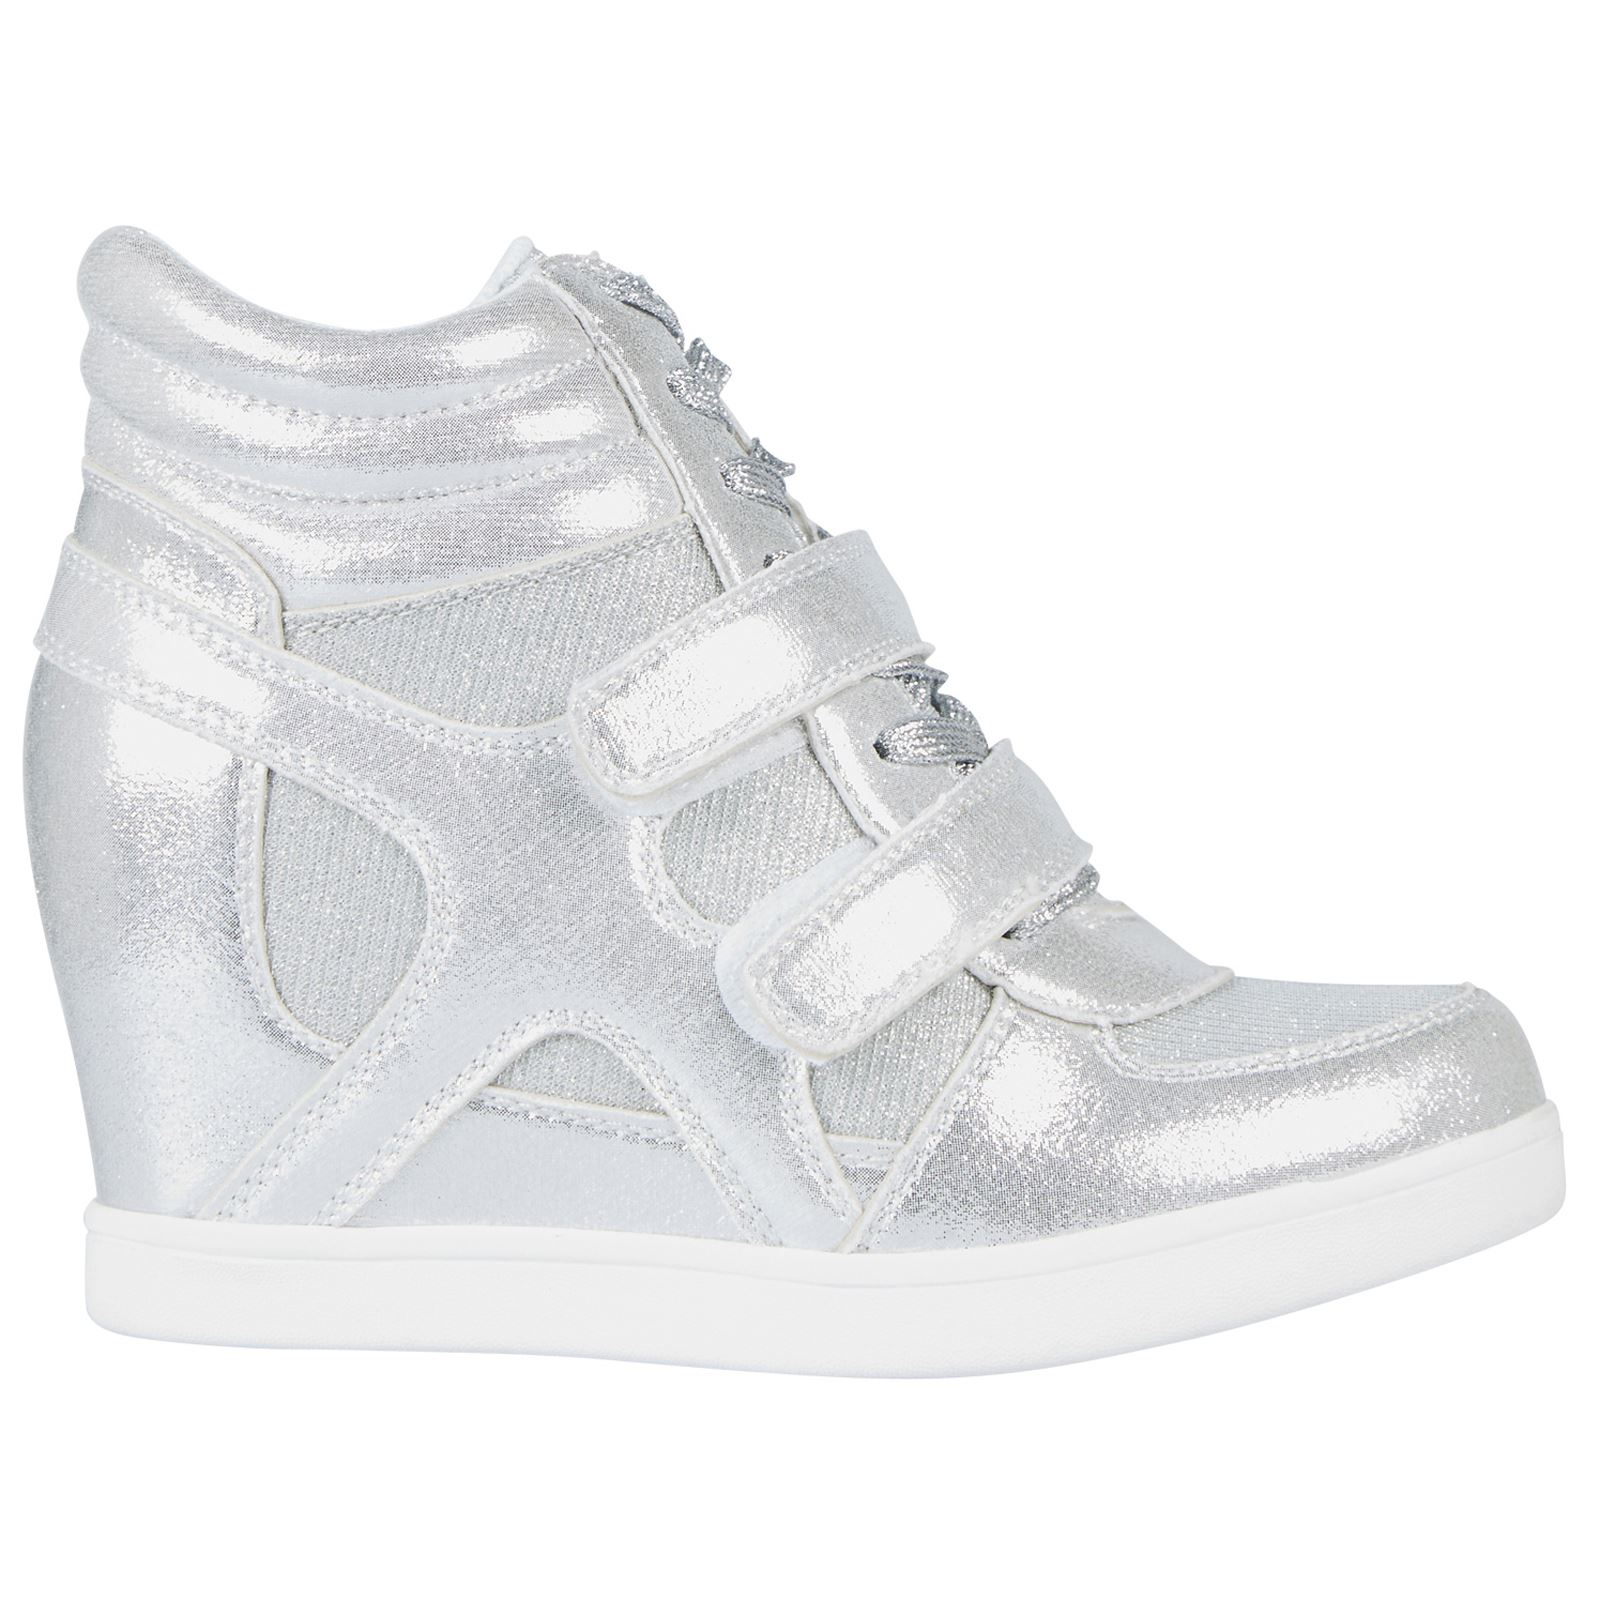 c4a0532940f1 Thea Womens Concealed Wedges Heels Trainers Ladies High Top Shoes Pumps  Size New